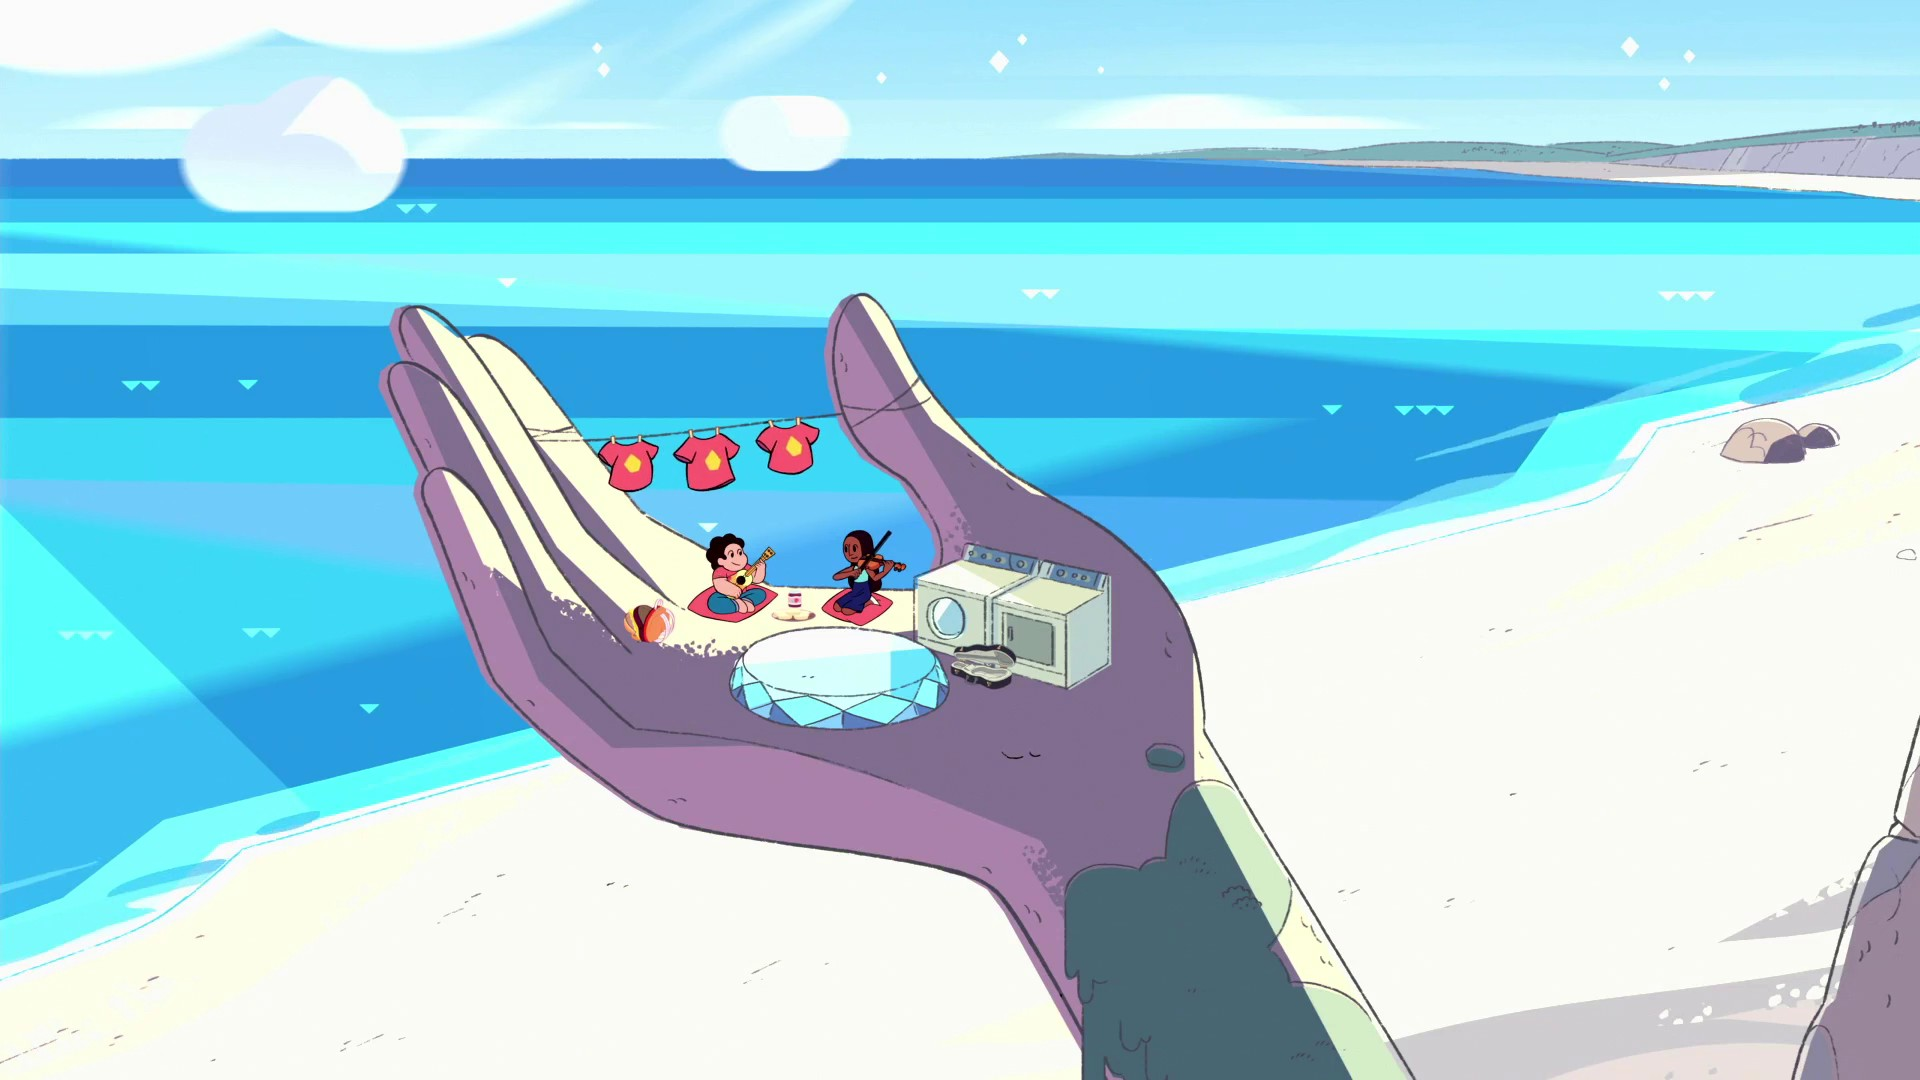 Free Fall Mobile Phone Wallpapers Steven Universe Wallpaper 183 ① Download Free High Resolution